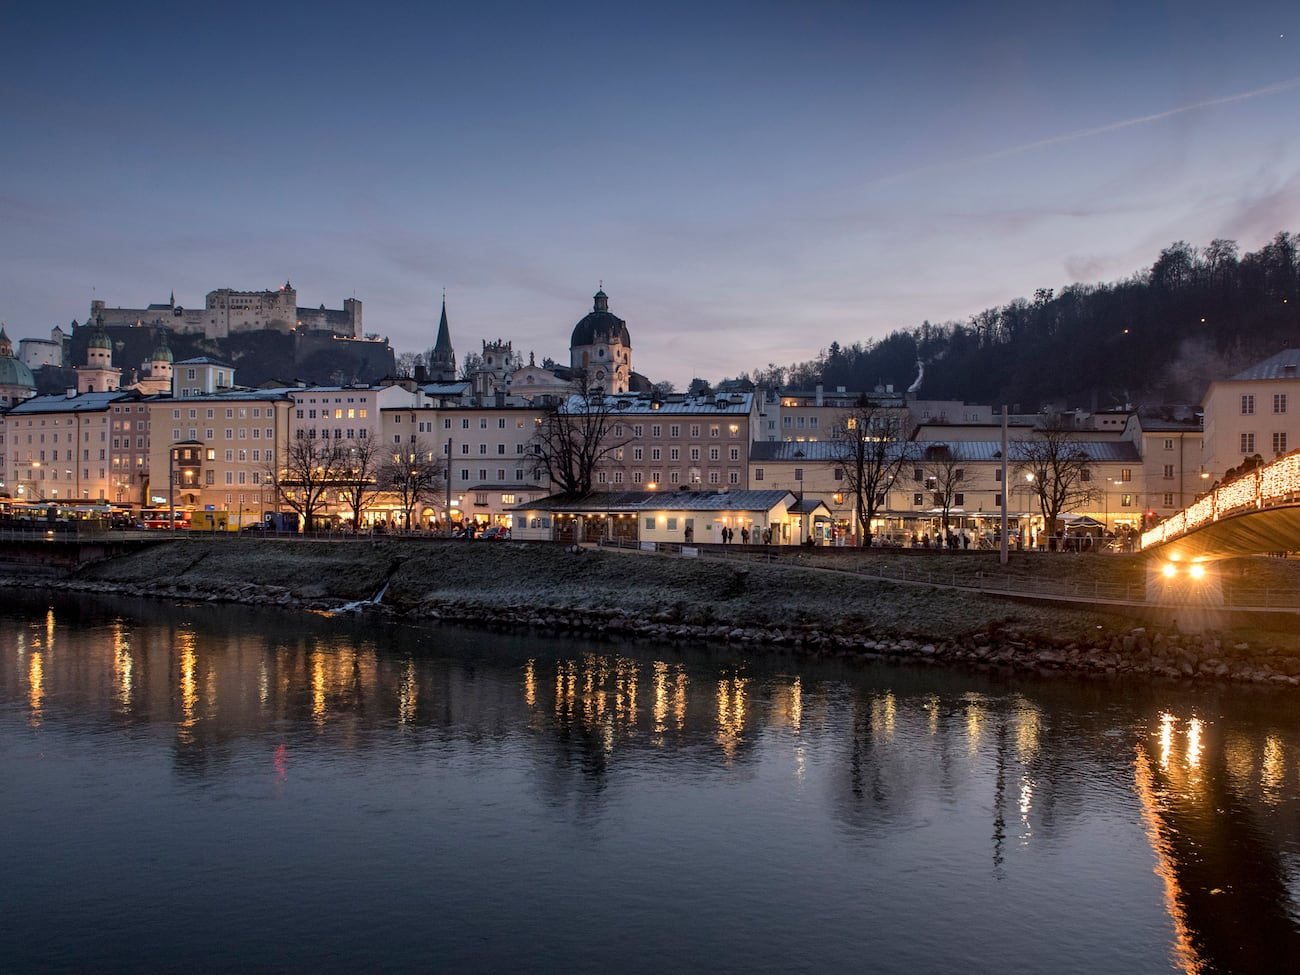 The city of Salzburg, Austria on the bank of a river spanned by a bridge lit up at dusk